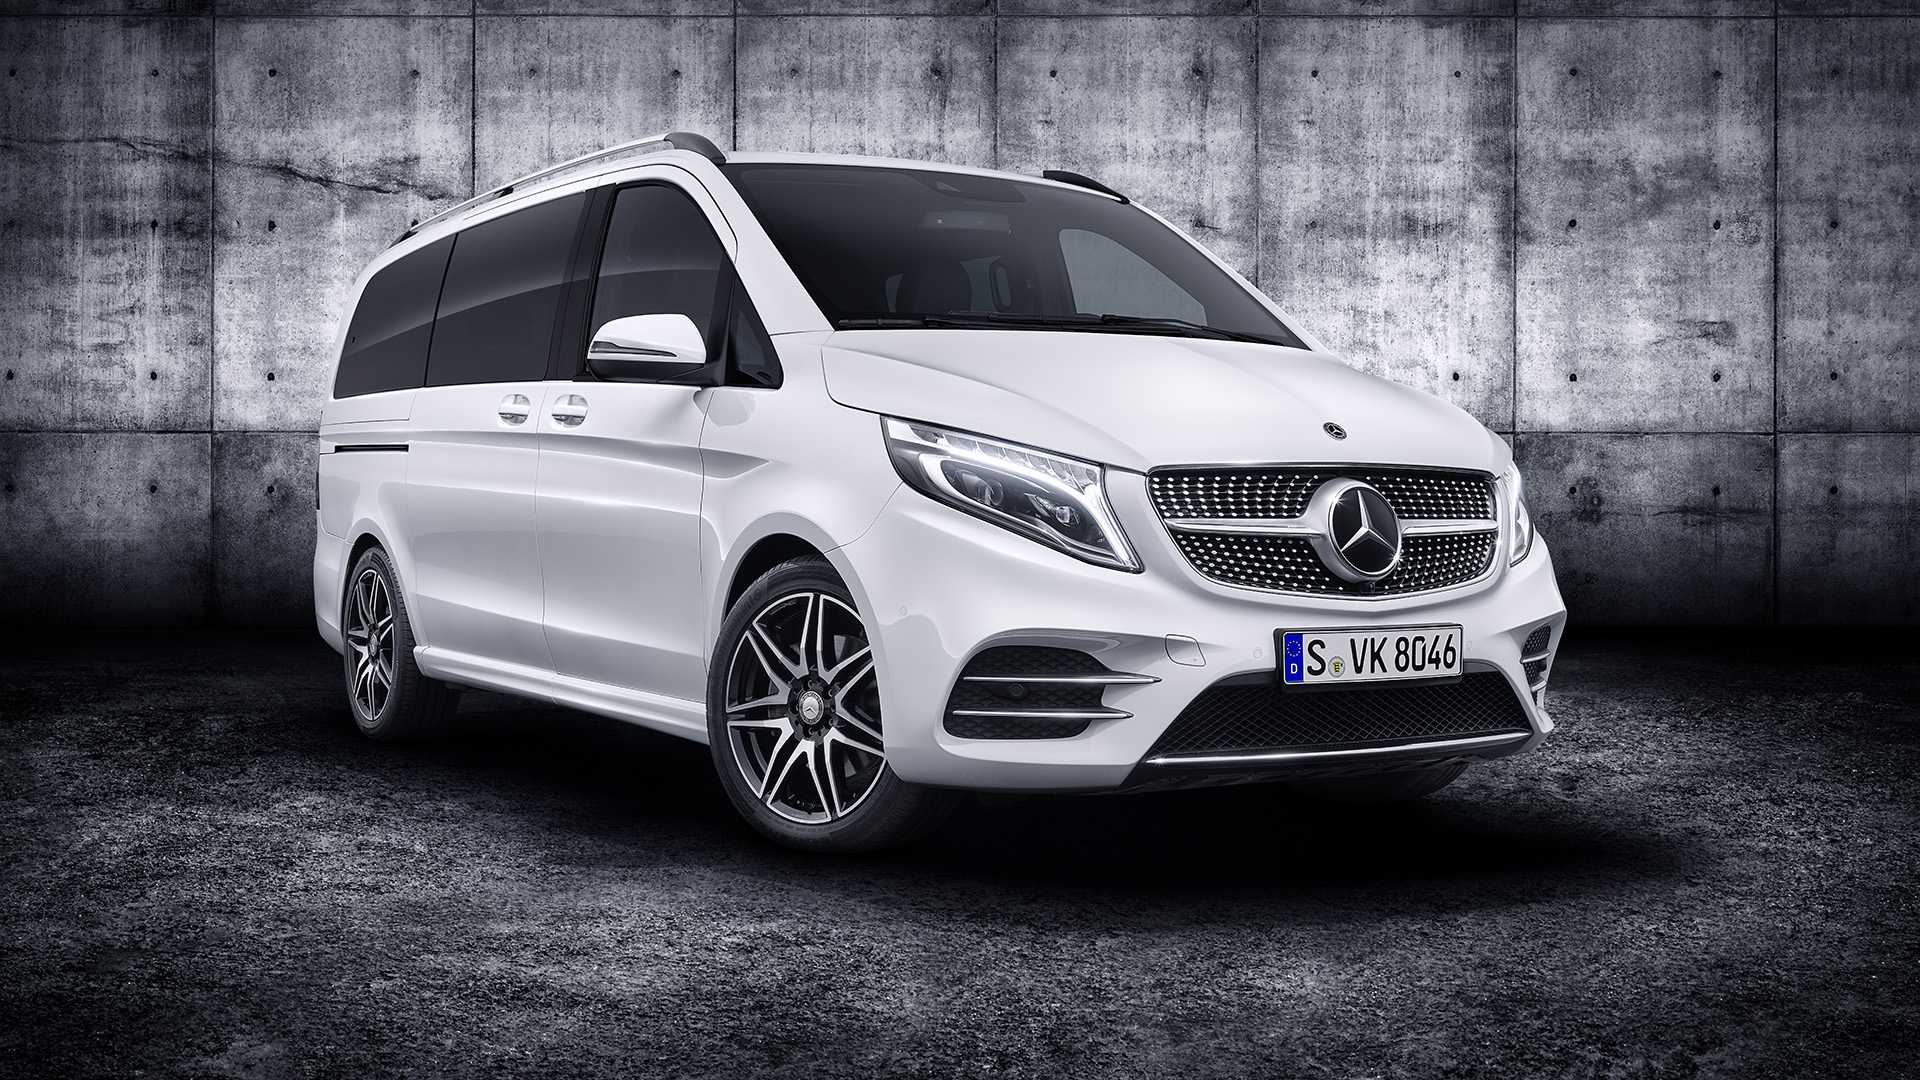 Mercedes V Class >> 2019 Mercedes V Class Debuts Refresh With New Engine Tech